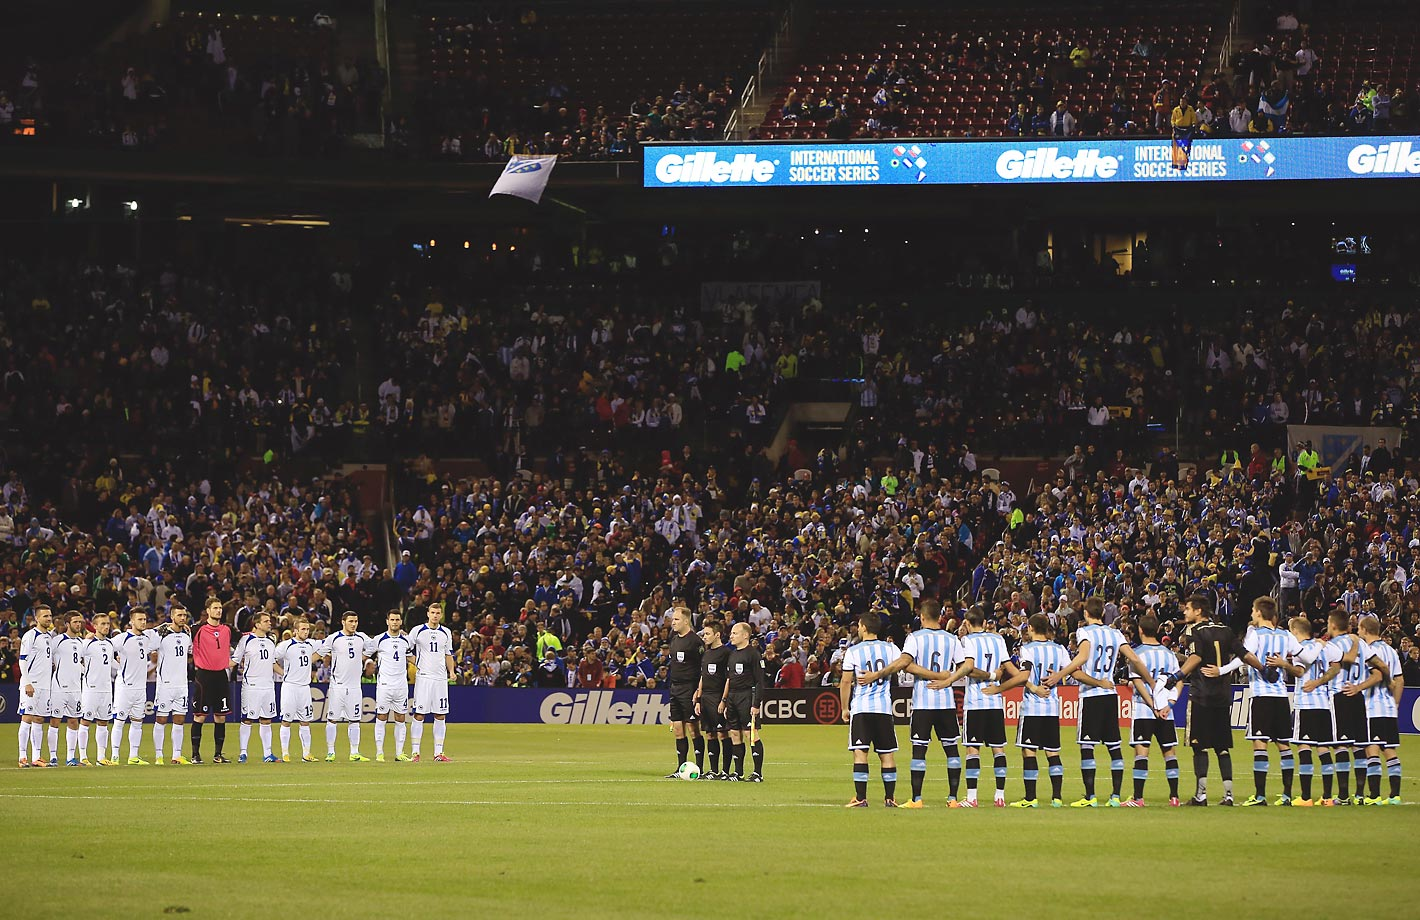 Argentina played Bosnia-Herzegovina during the international friendly match at Busch Stadium on November 18, 2013.